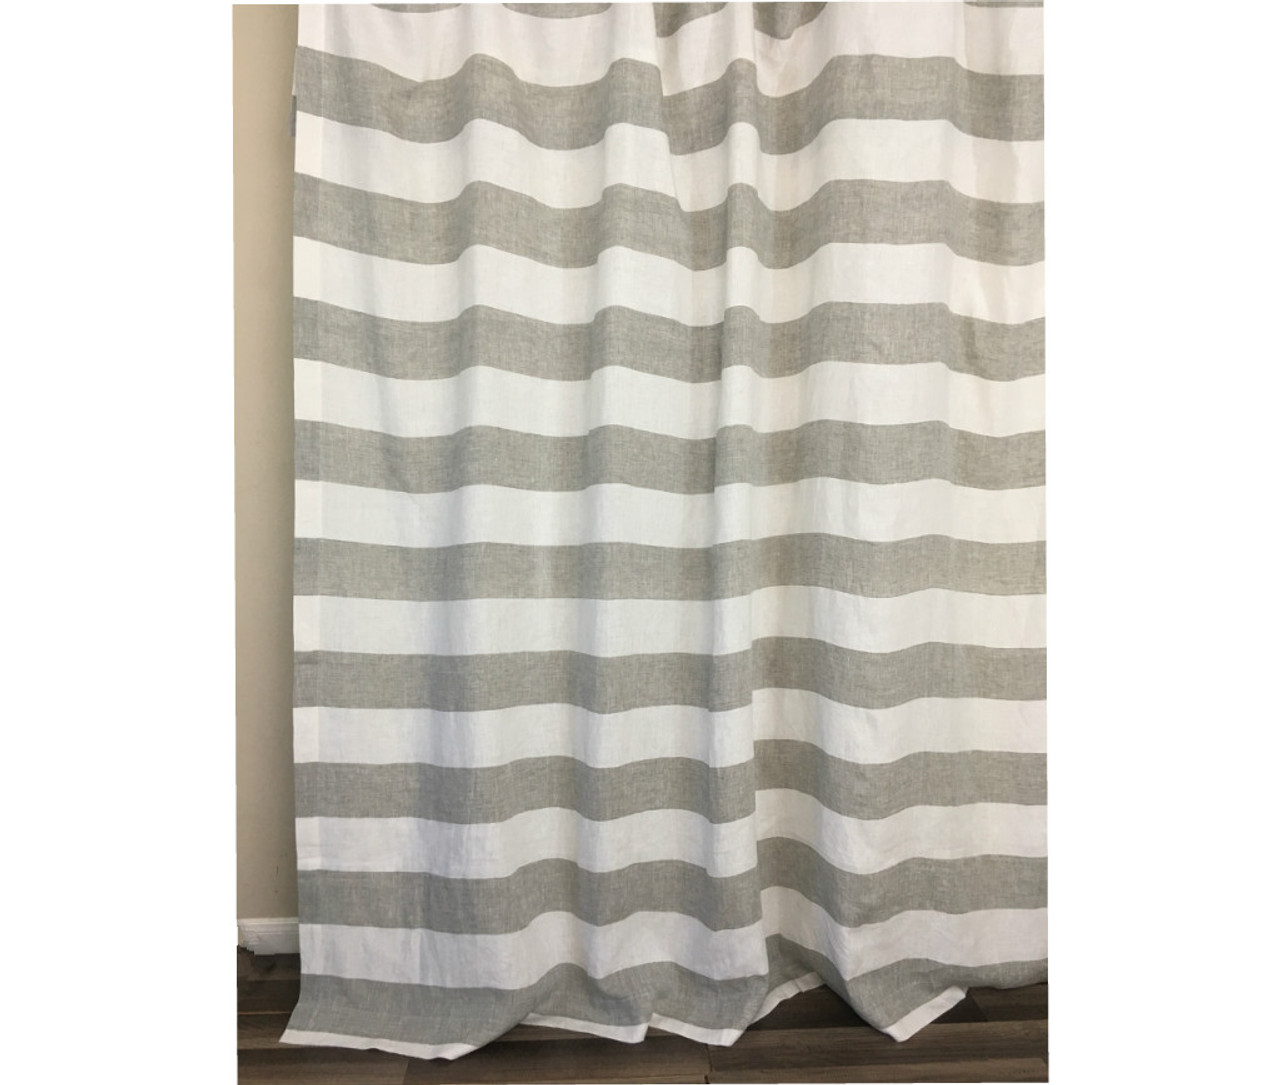 yellow curtain curtains white striped kitchen gray and curtainsyellow design photos archaicawful